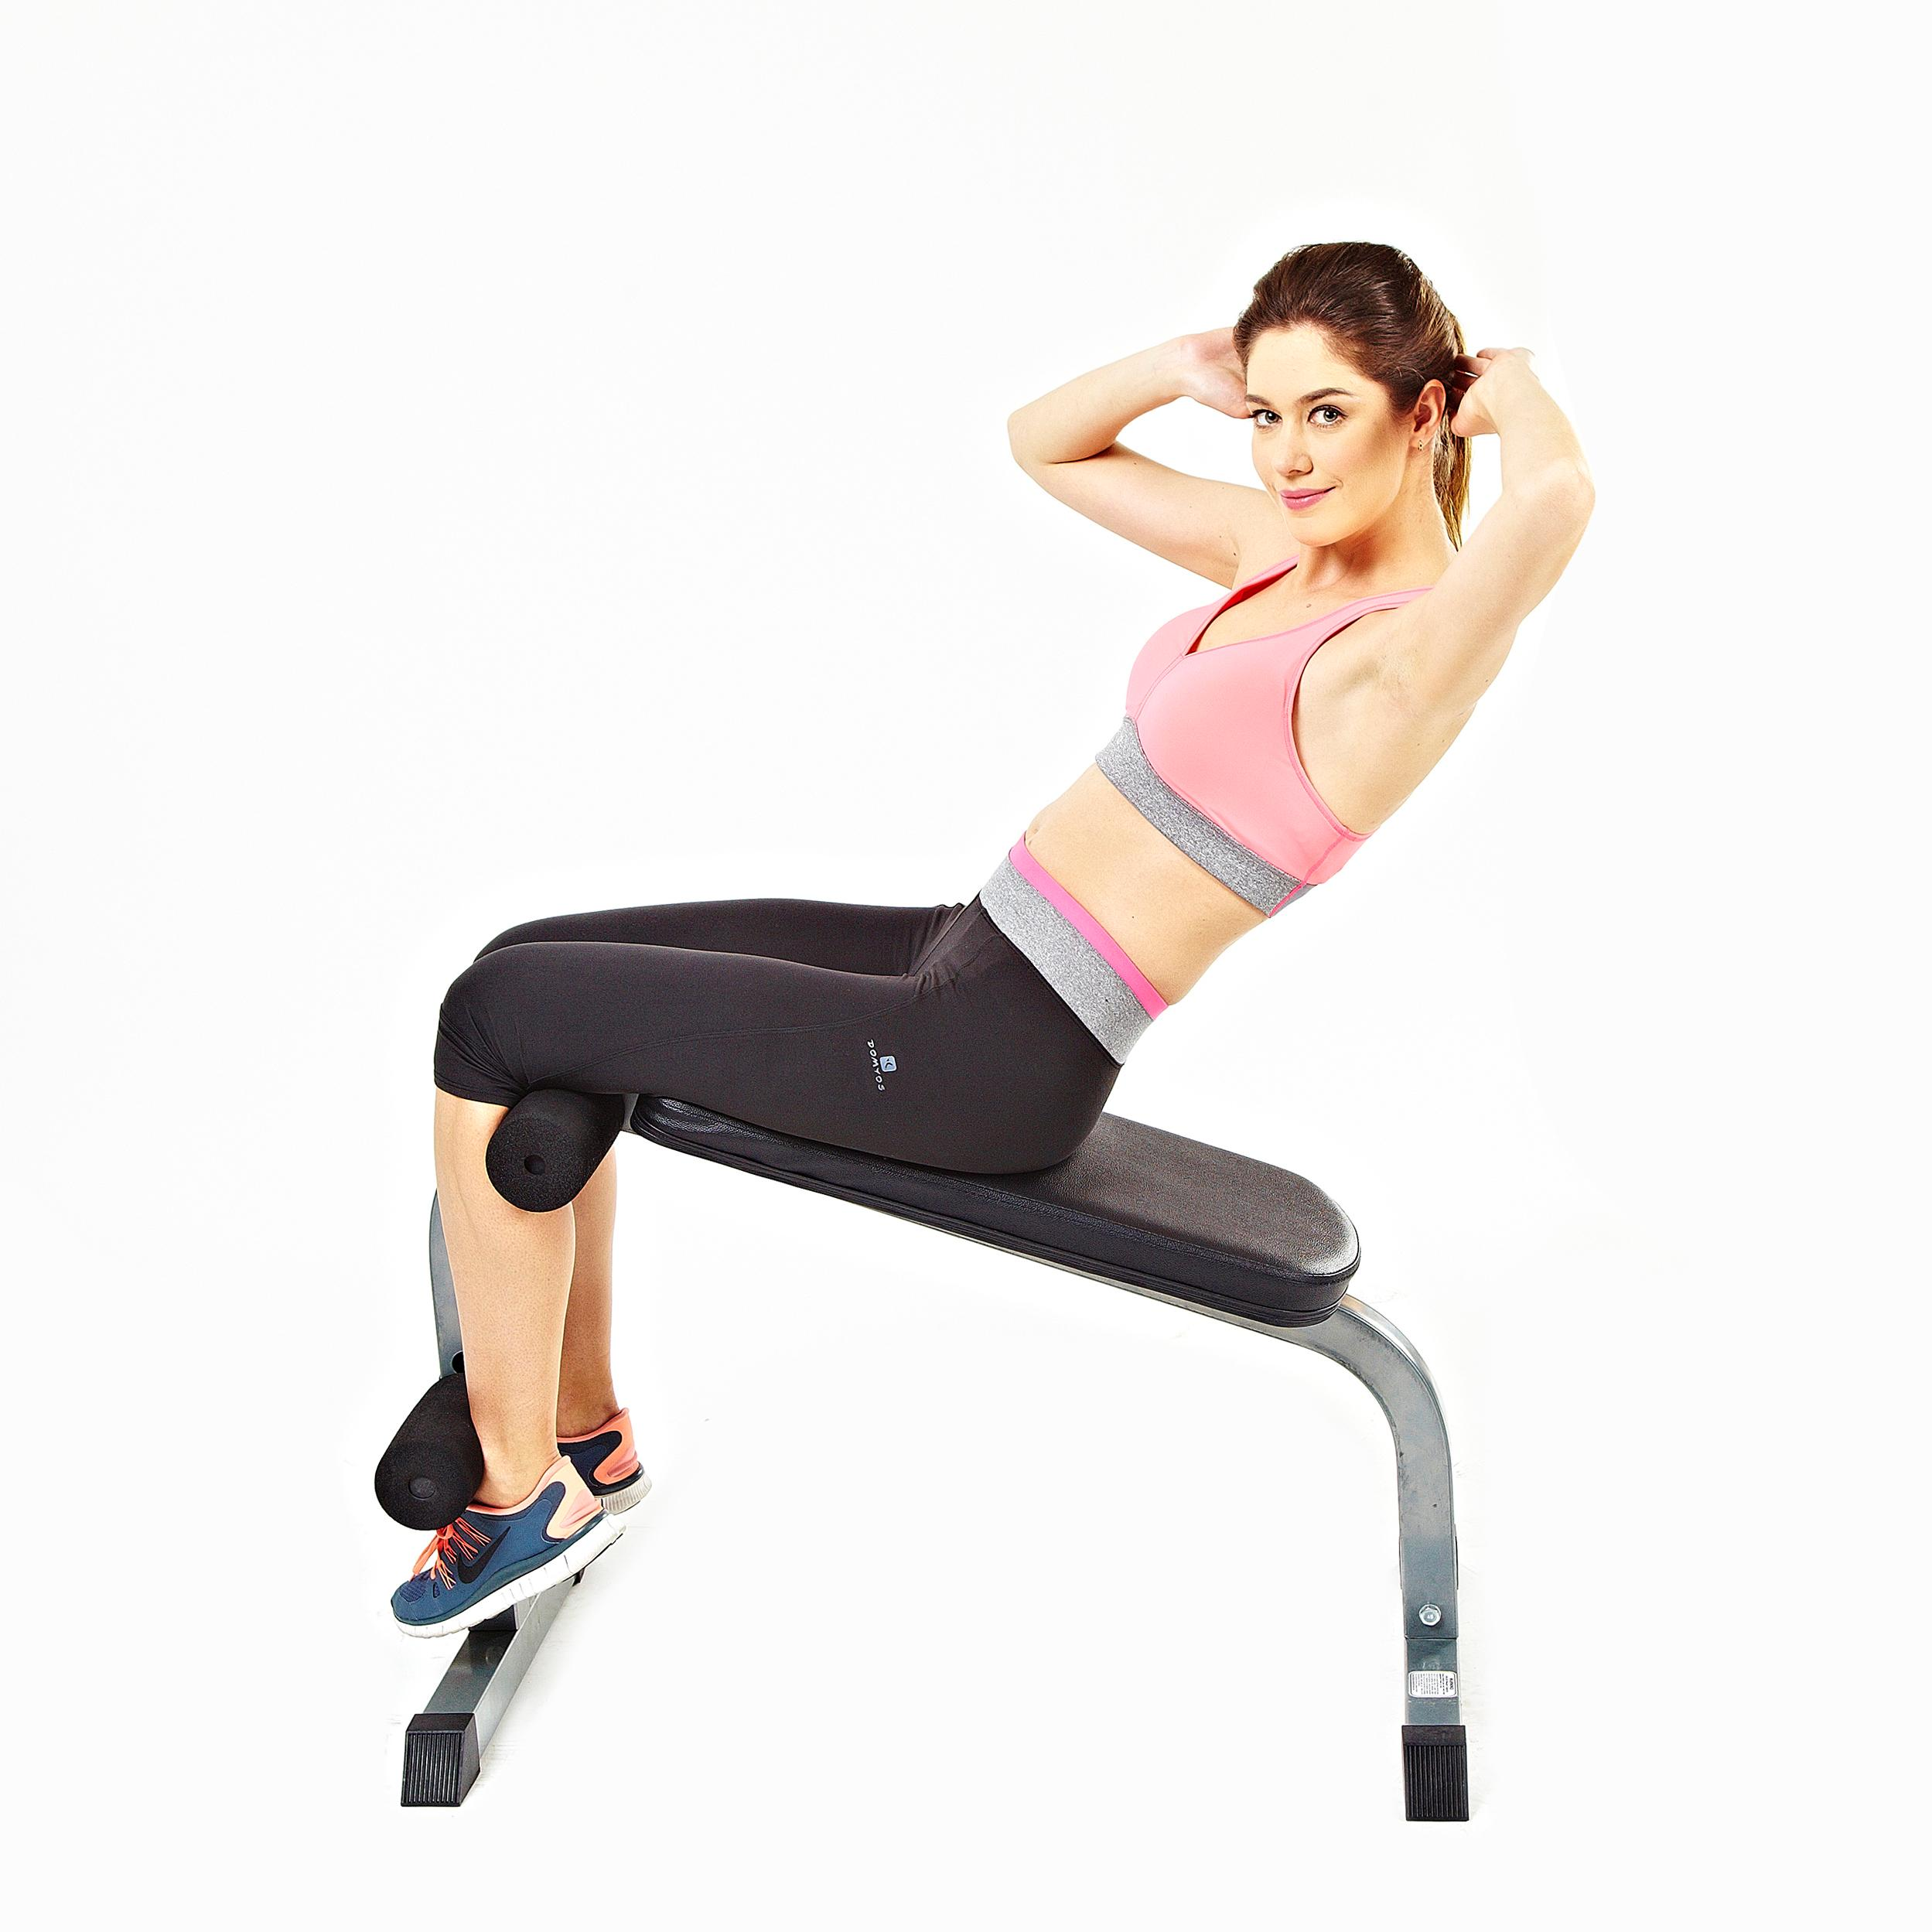 Buy Sit Up Bench Abs Training Ab Rollers Pull Spring: Amazon.com : Sunny Health & Fitness SF-BH6502 Heavy Duty